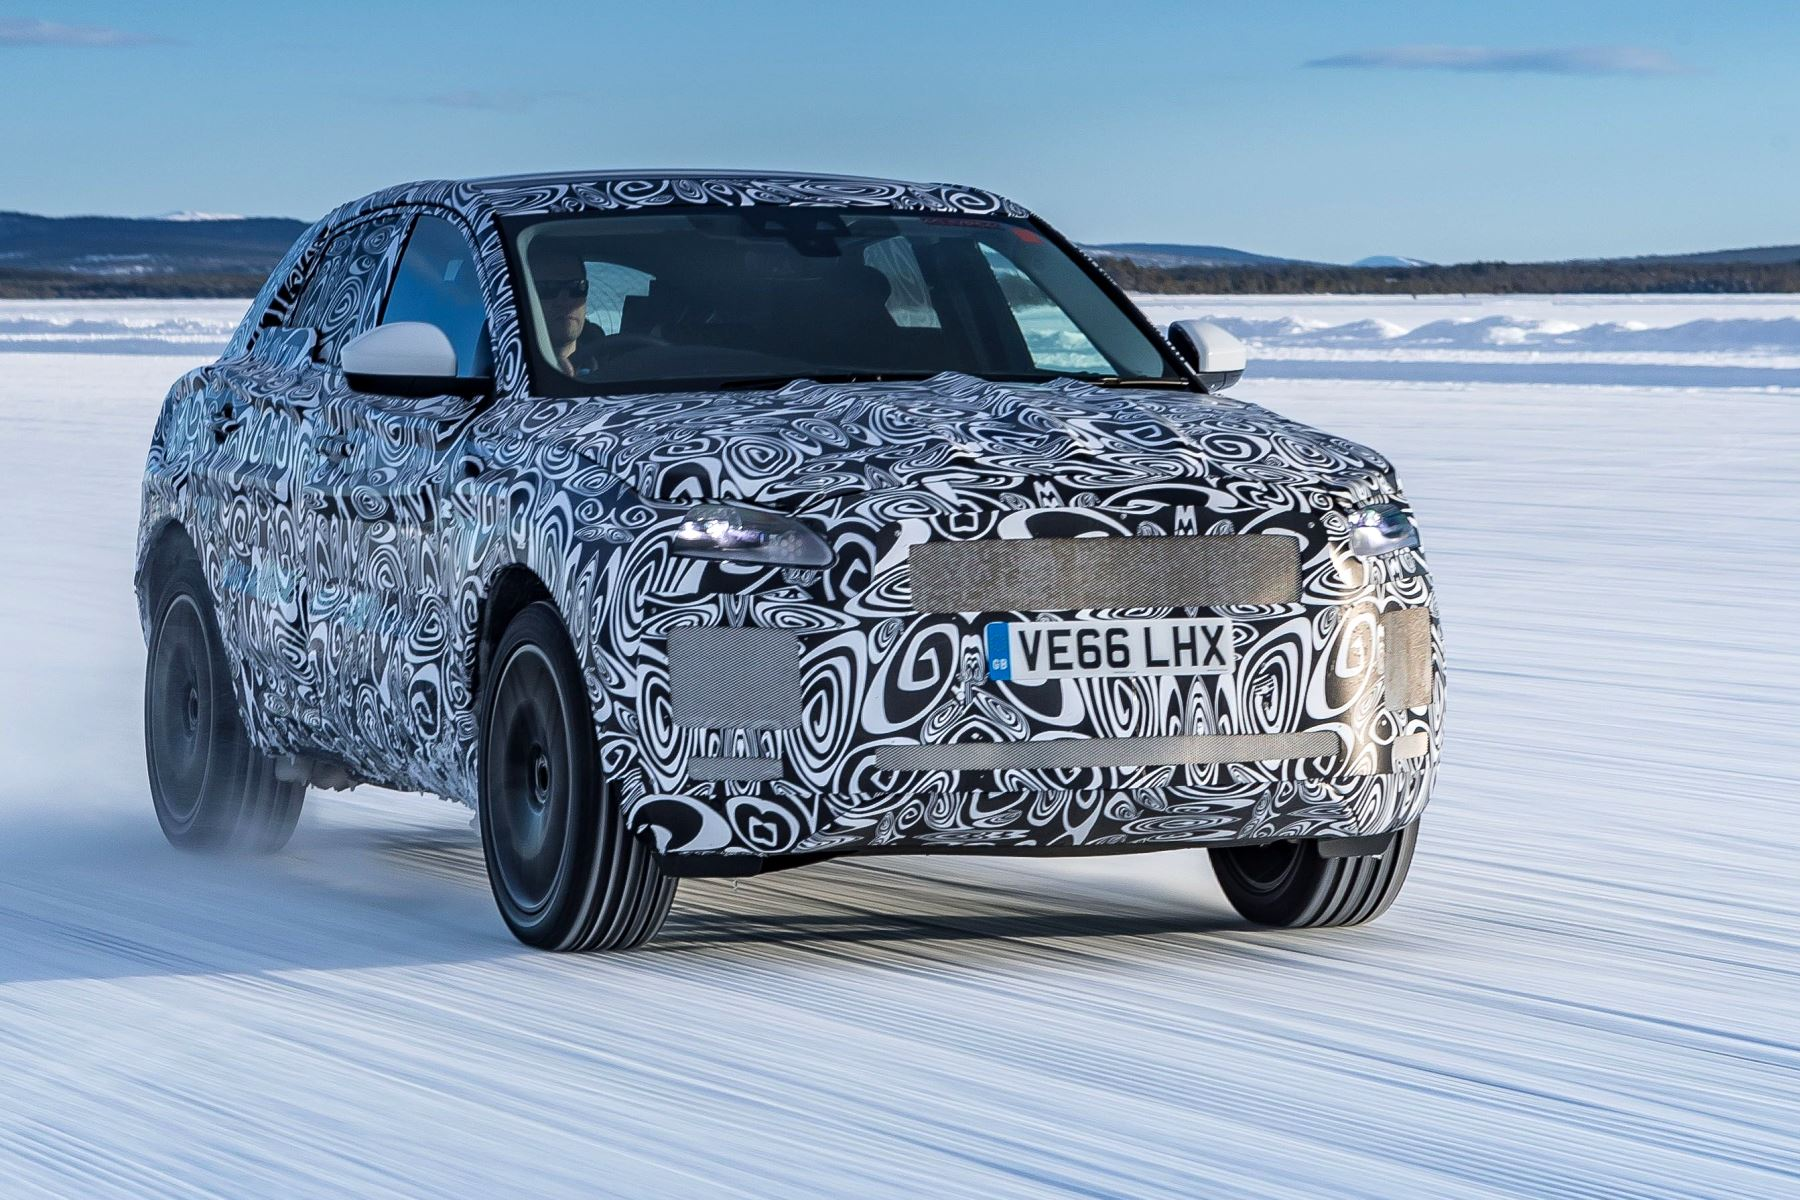 Jaguar E-Pace - 150 prototypes, 120000 test hours